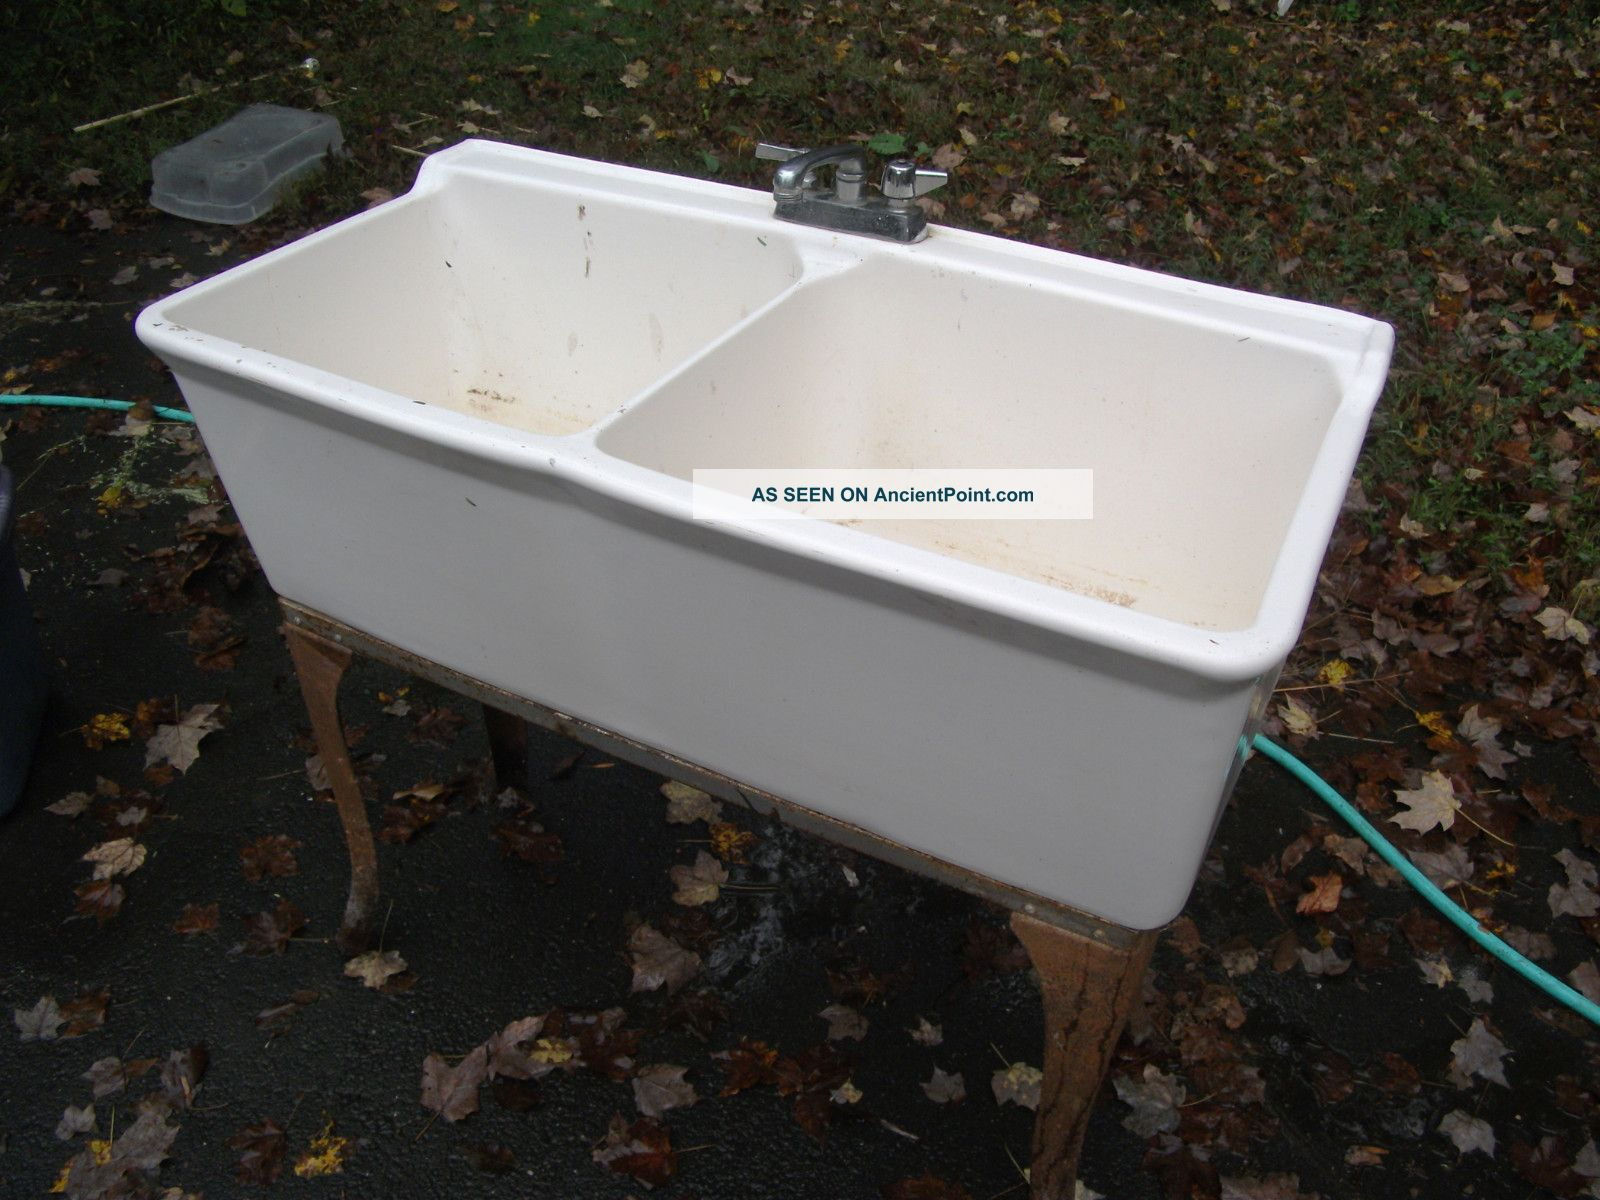 Utility Sink Porcelain : Vintage Porcelain Farm Sink Or Utility Sink, Metal Base W/ Legs ...